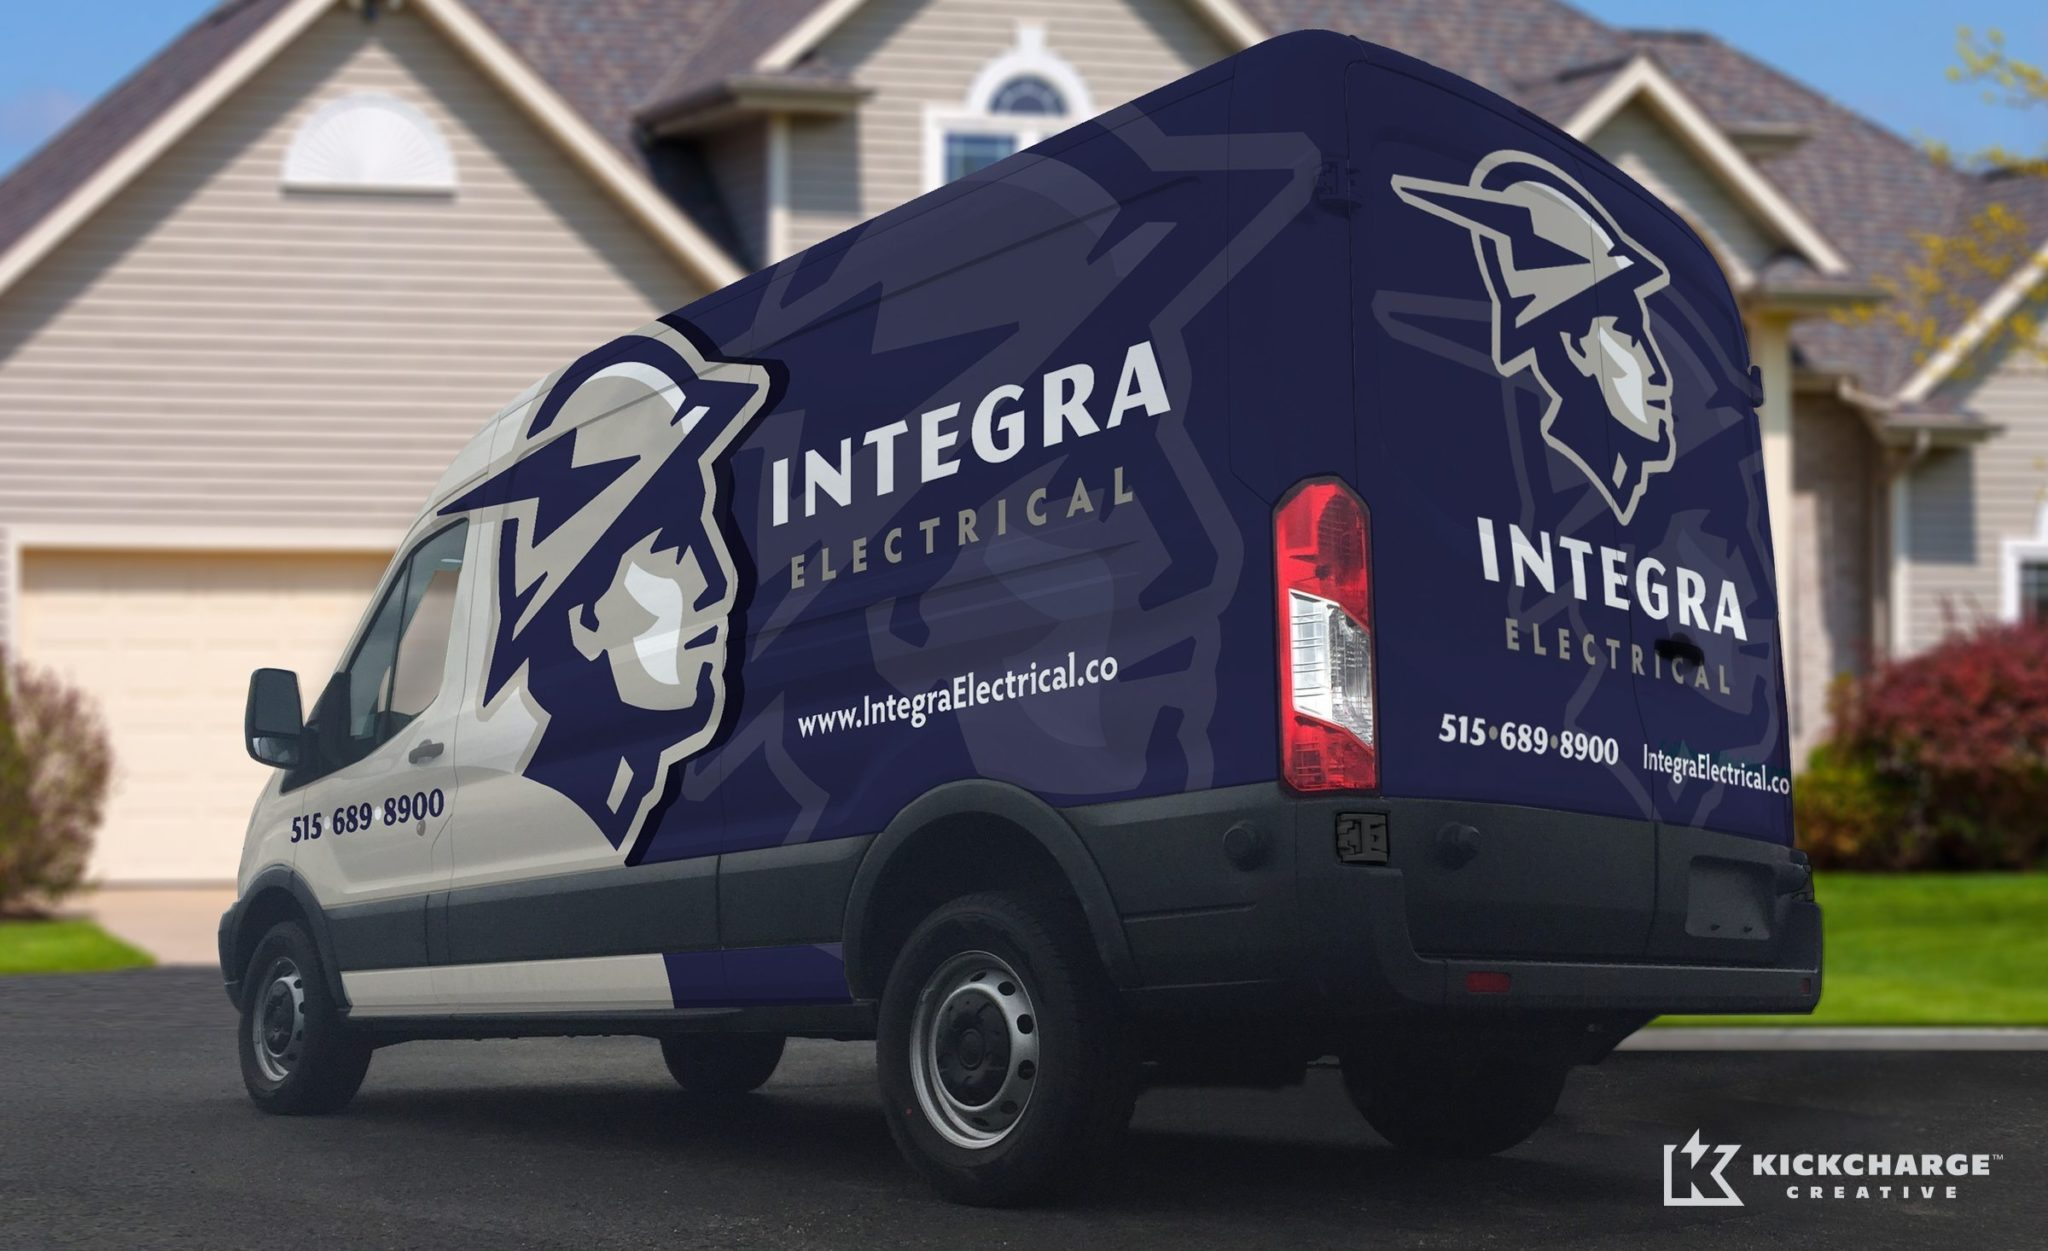 Integra Electrical Vehicle Wrap Design